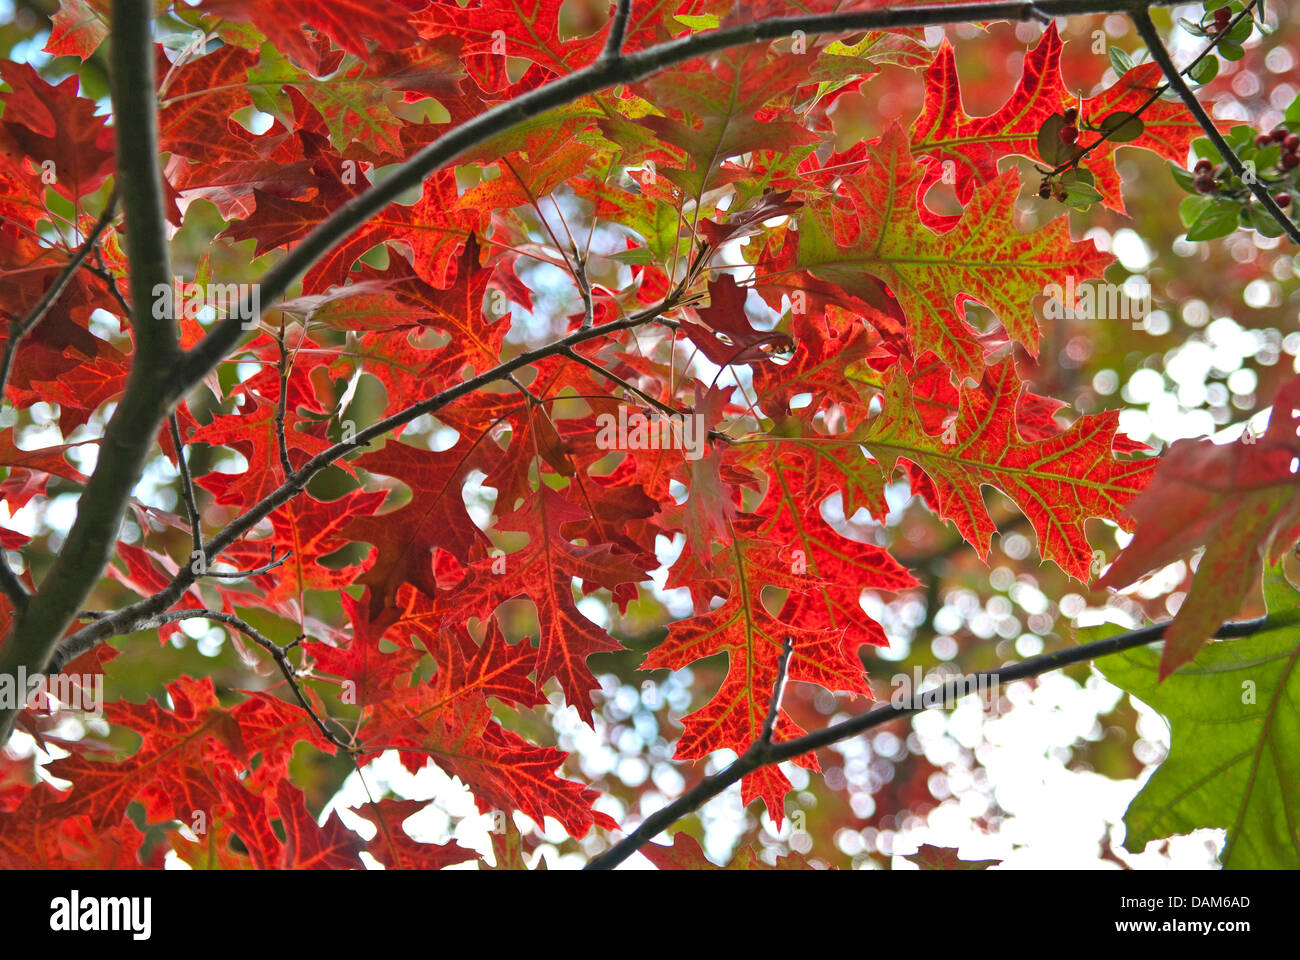 scarlet oak (Quercus coccinea), laves in autumn, Germany - Stock Image